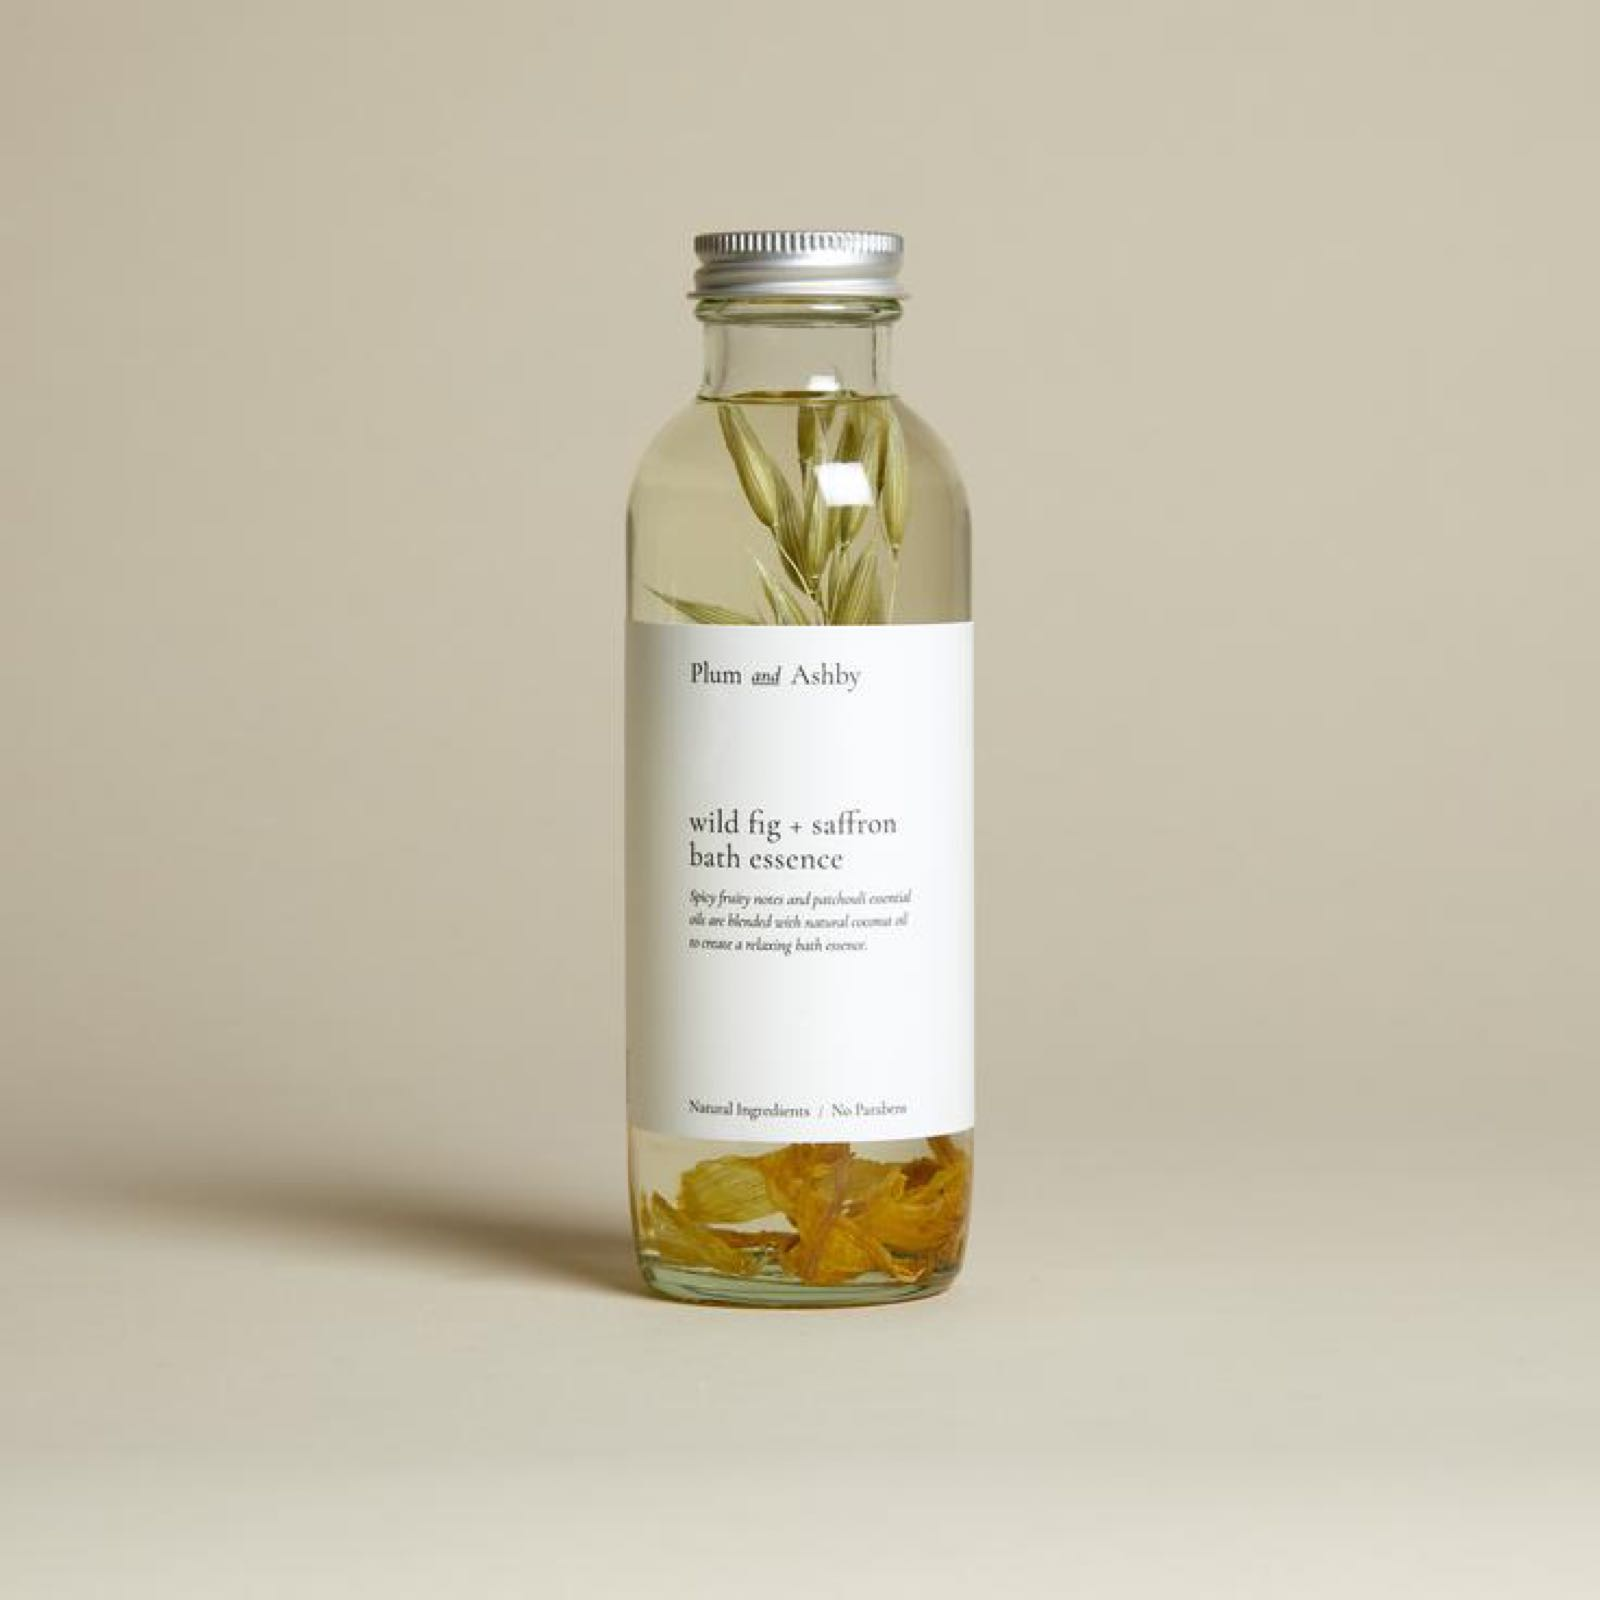 Plum & Ashby Wild Fig & Saffron Bath Essence 225ml made with Natural Oils for a Luxurious Bath